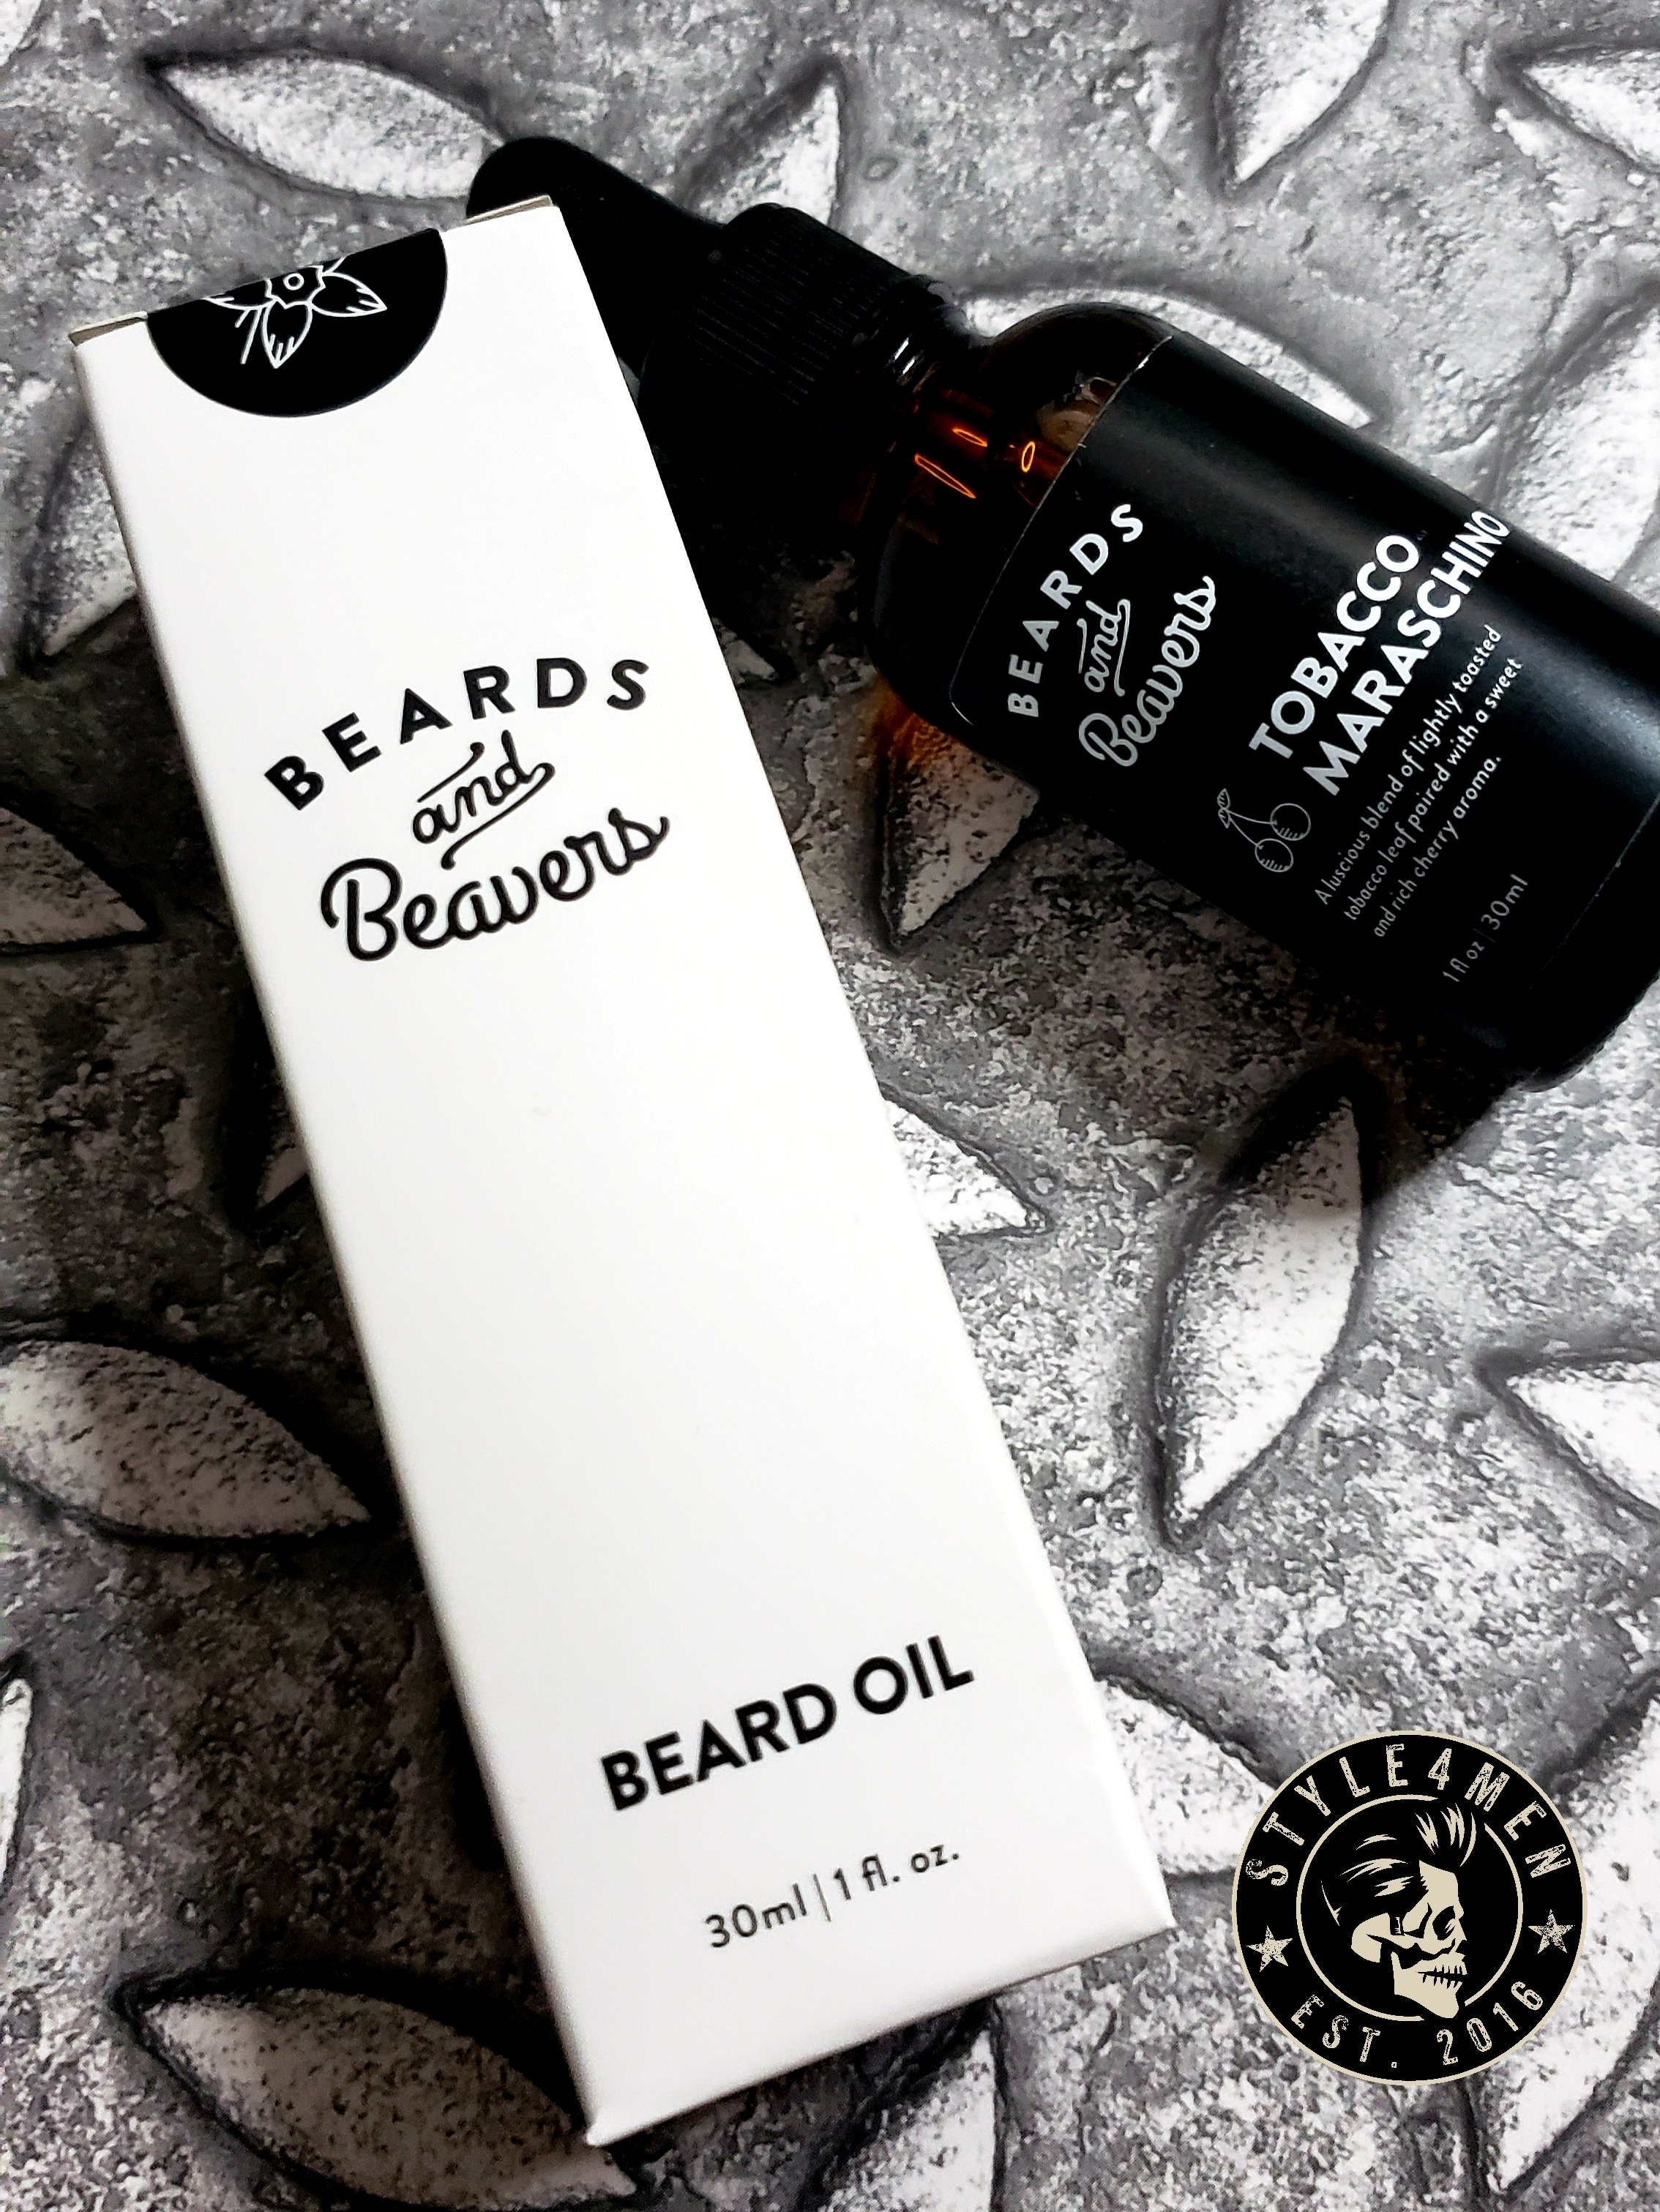 Beards and Beavers oil